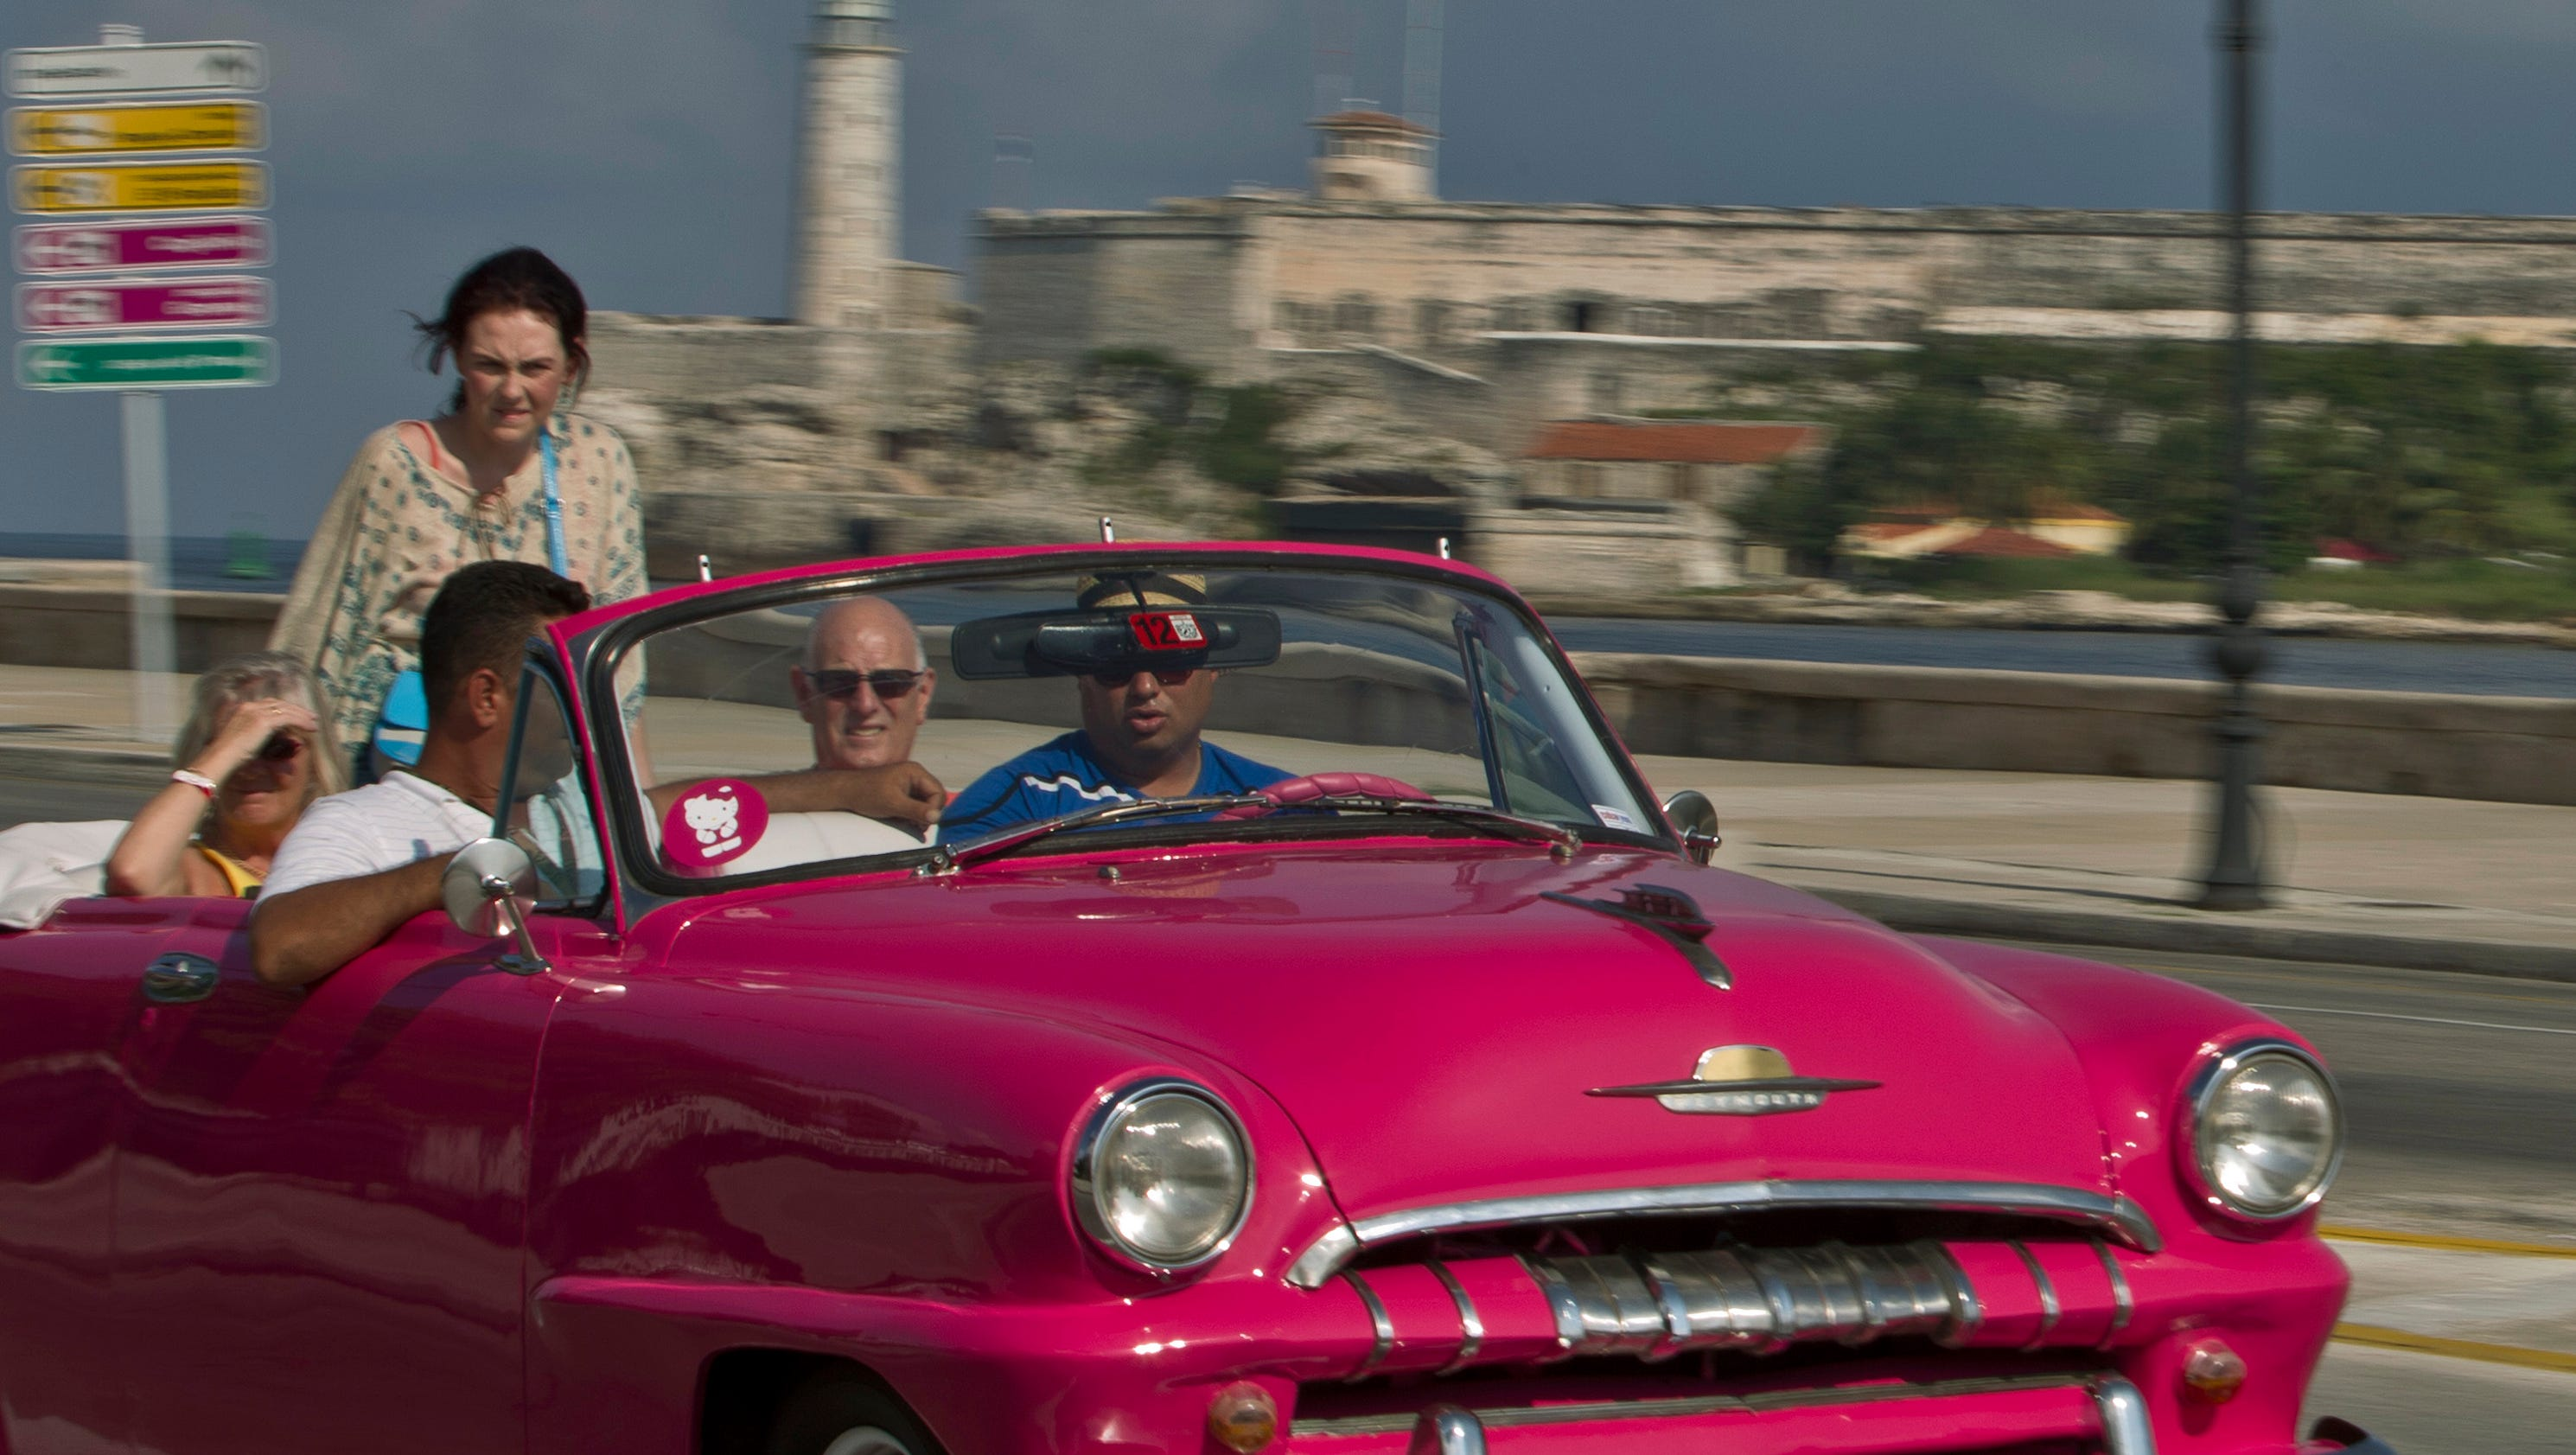 Cuba trade could benefit car collectors, automakers